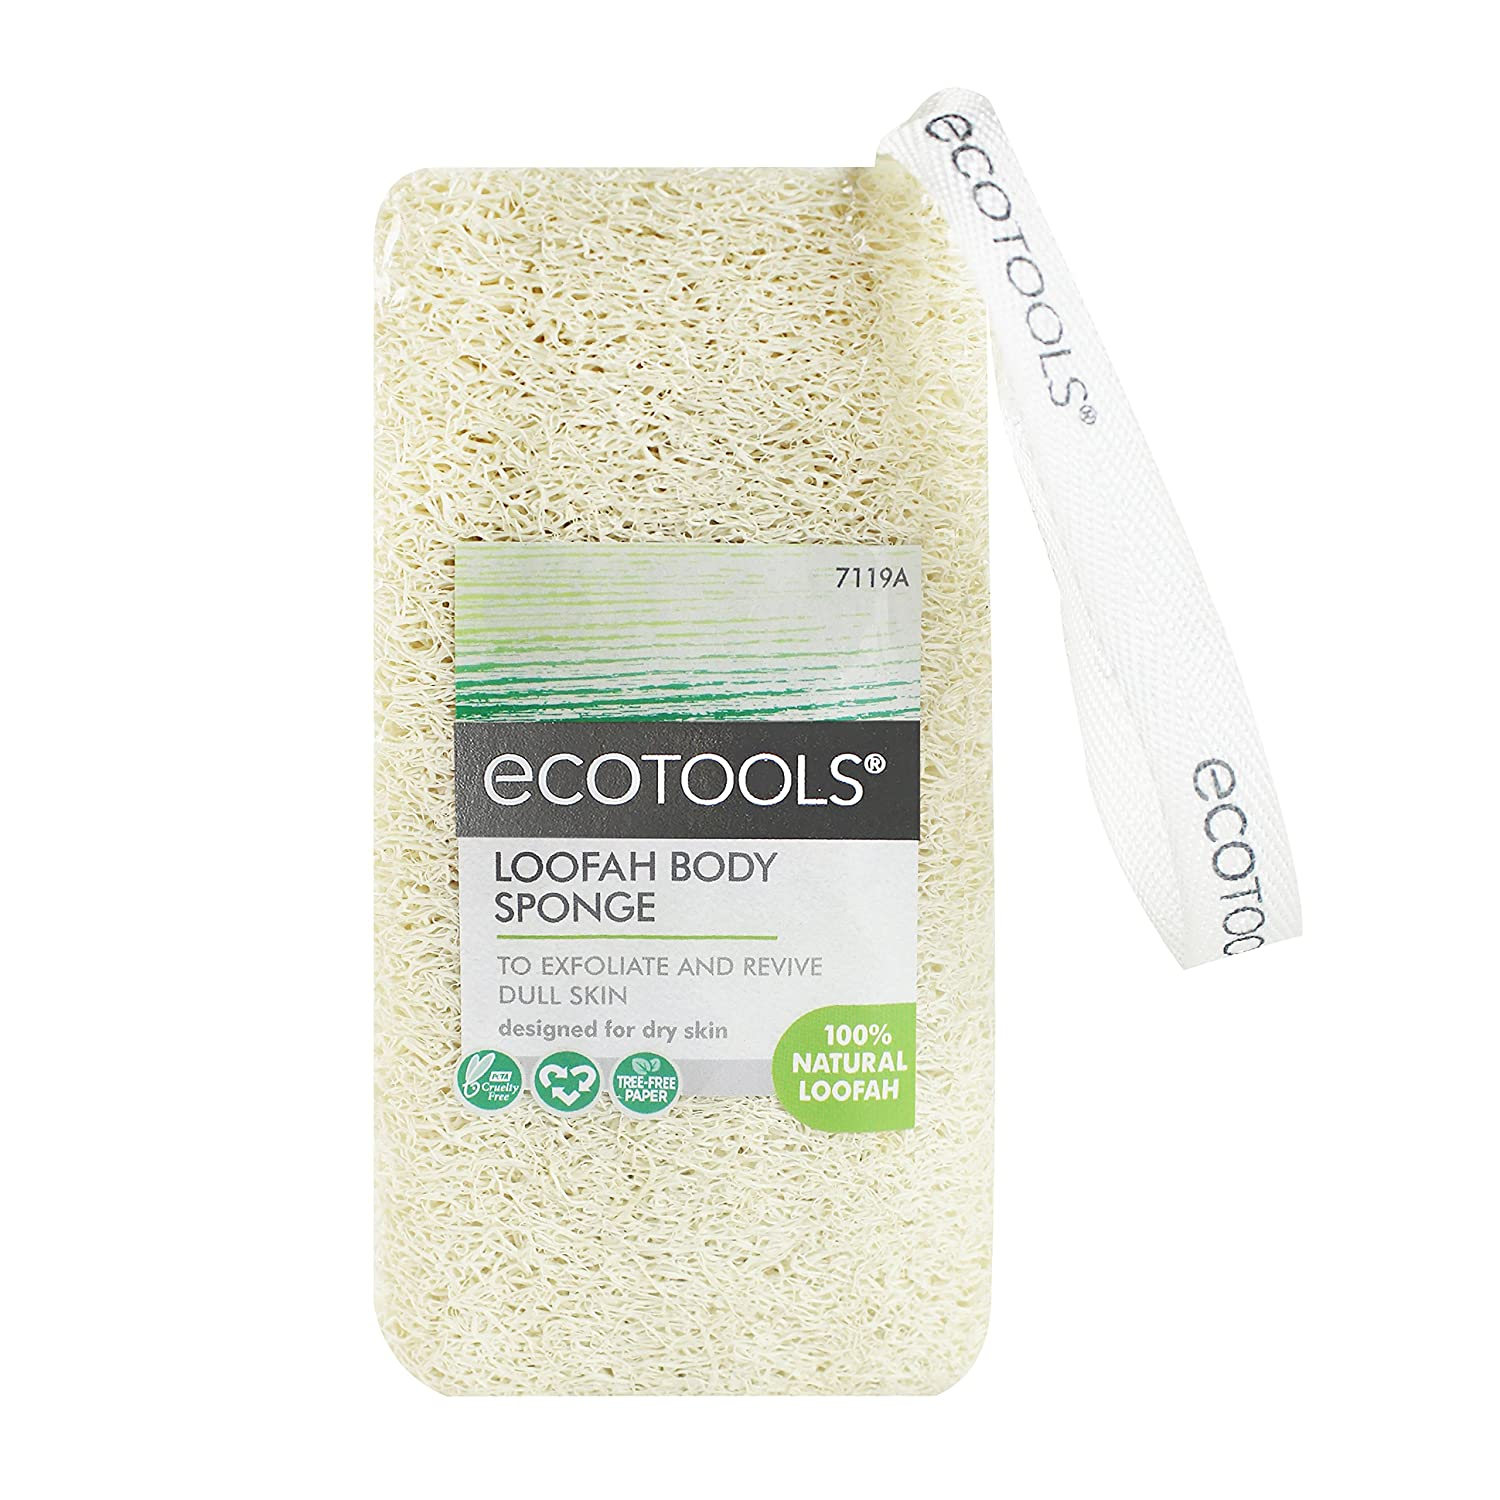 Ecotools Cruelty Free and Loofah Body Sponge (Pack of 3) Fine Netting Pouf; Rich Lather, Gentle Cleansing, and Exfoliation for Smoother, Softer Skin; Self Care Through Skin Care Paris Presents Incorporated 7119A